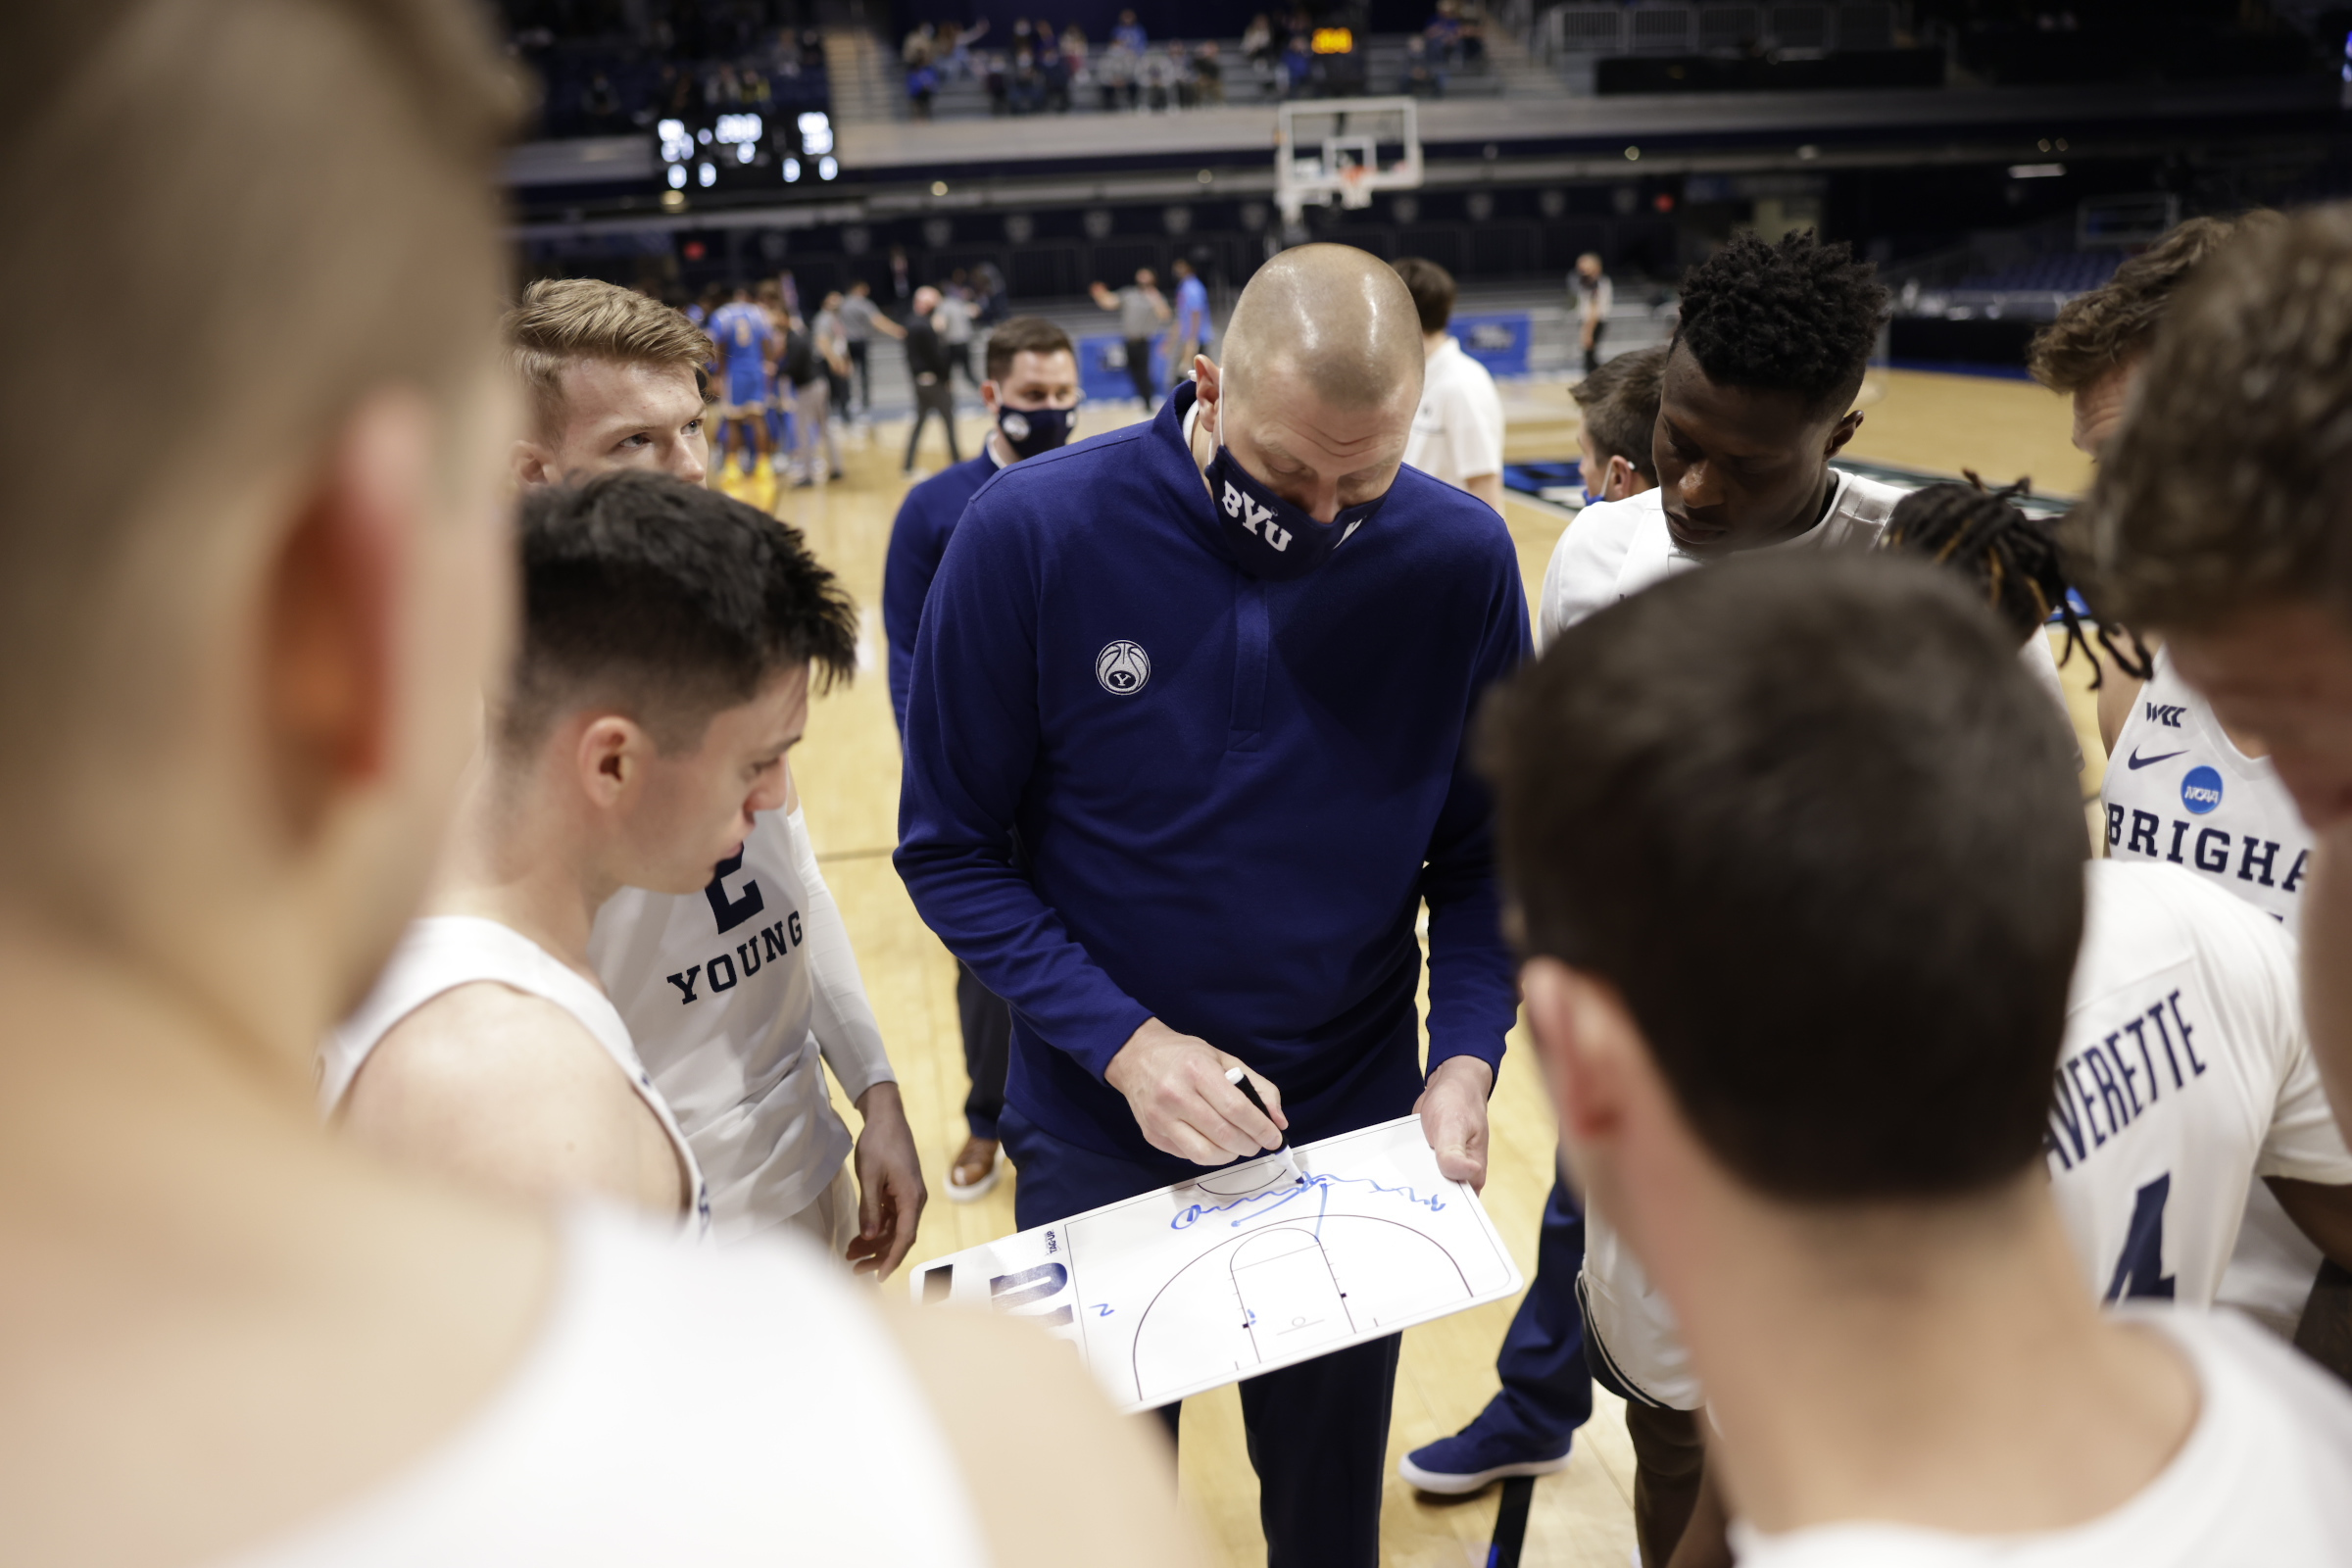 BYU coach Mark Pope, center, is surrounded by his players during a timeout in the Cougars' 73-62 loss to UCLA in the NCAA Tournament first round at Hinkle Fieldhouse in Indianapolis on Saturday, March 20, 2021.